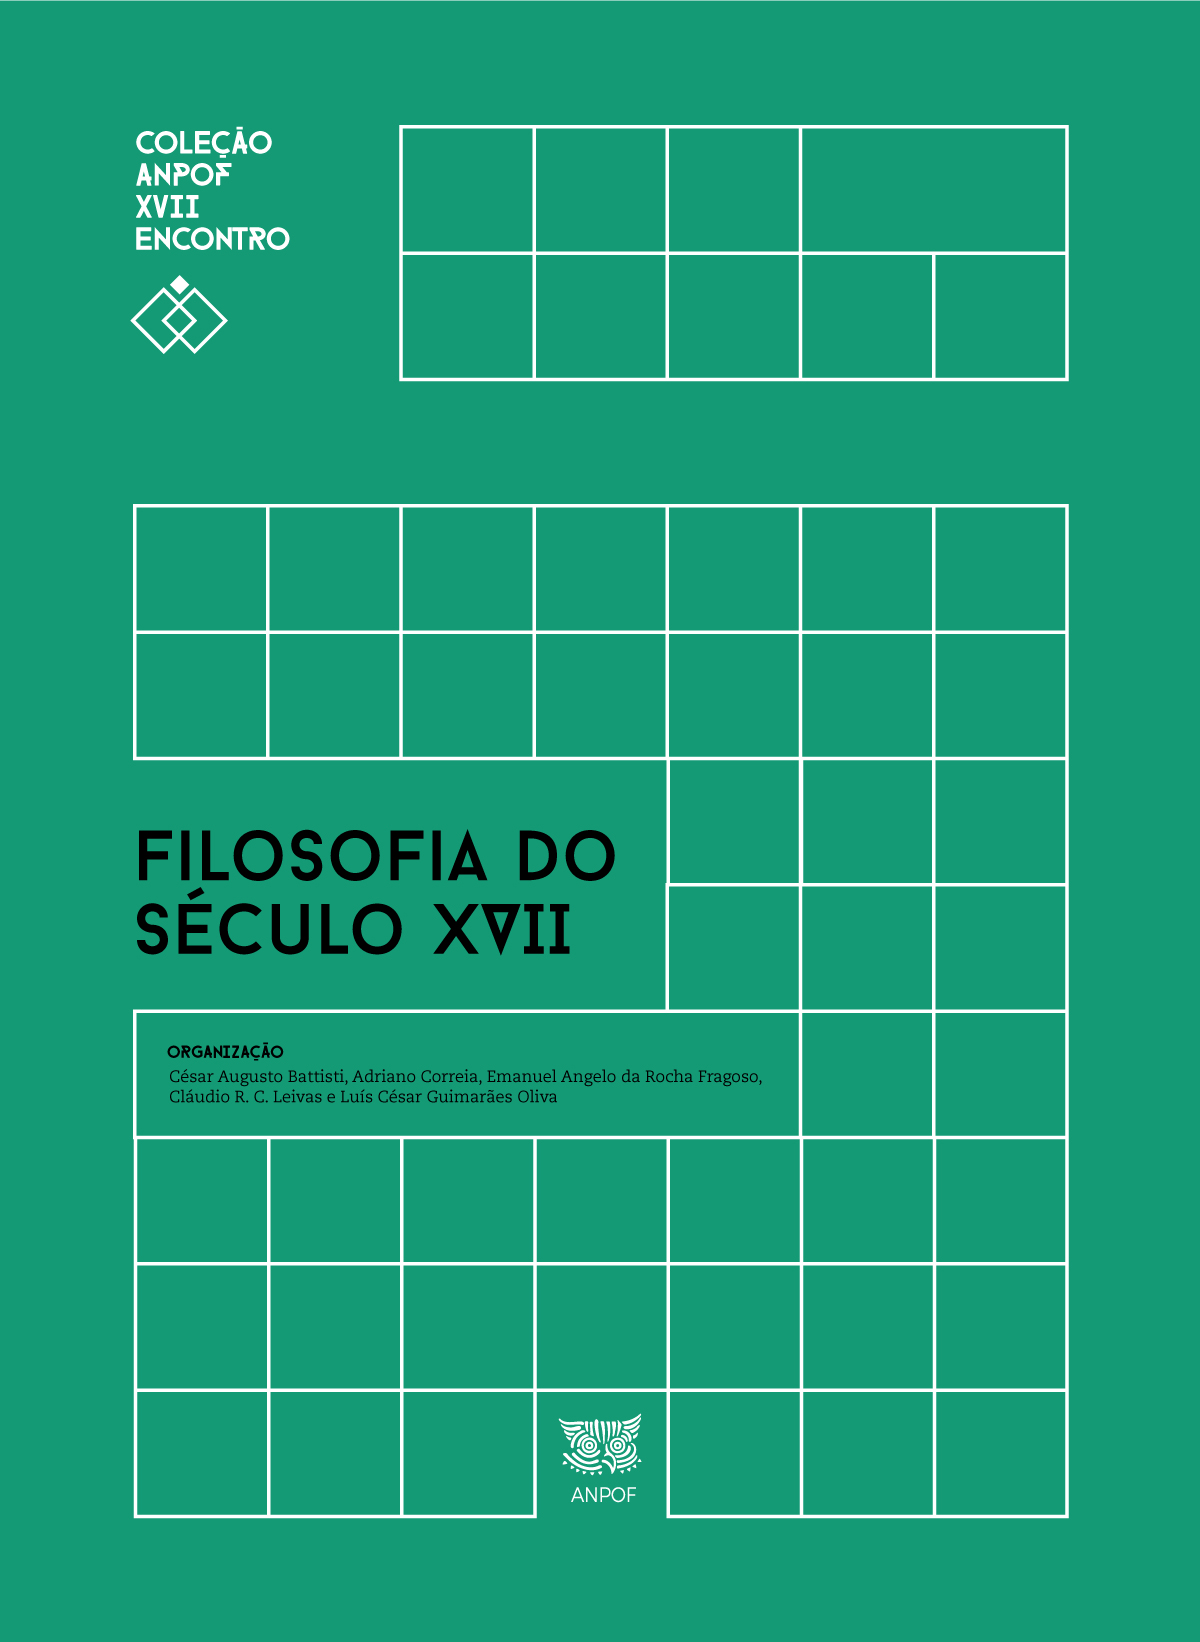 Filosofia do Sculo XVII